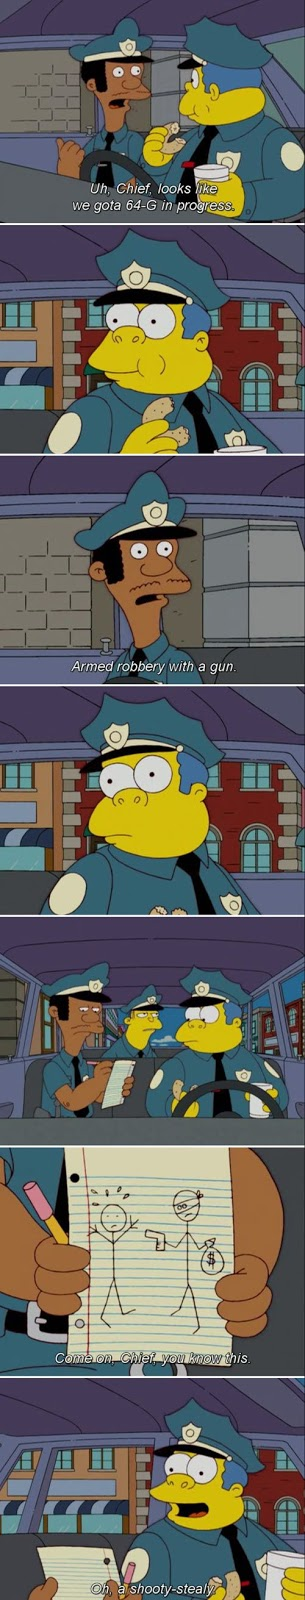 armed robbery chief Wiggum